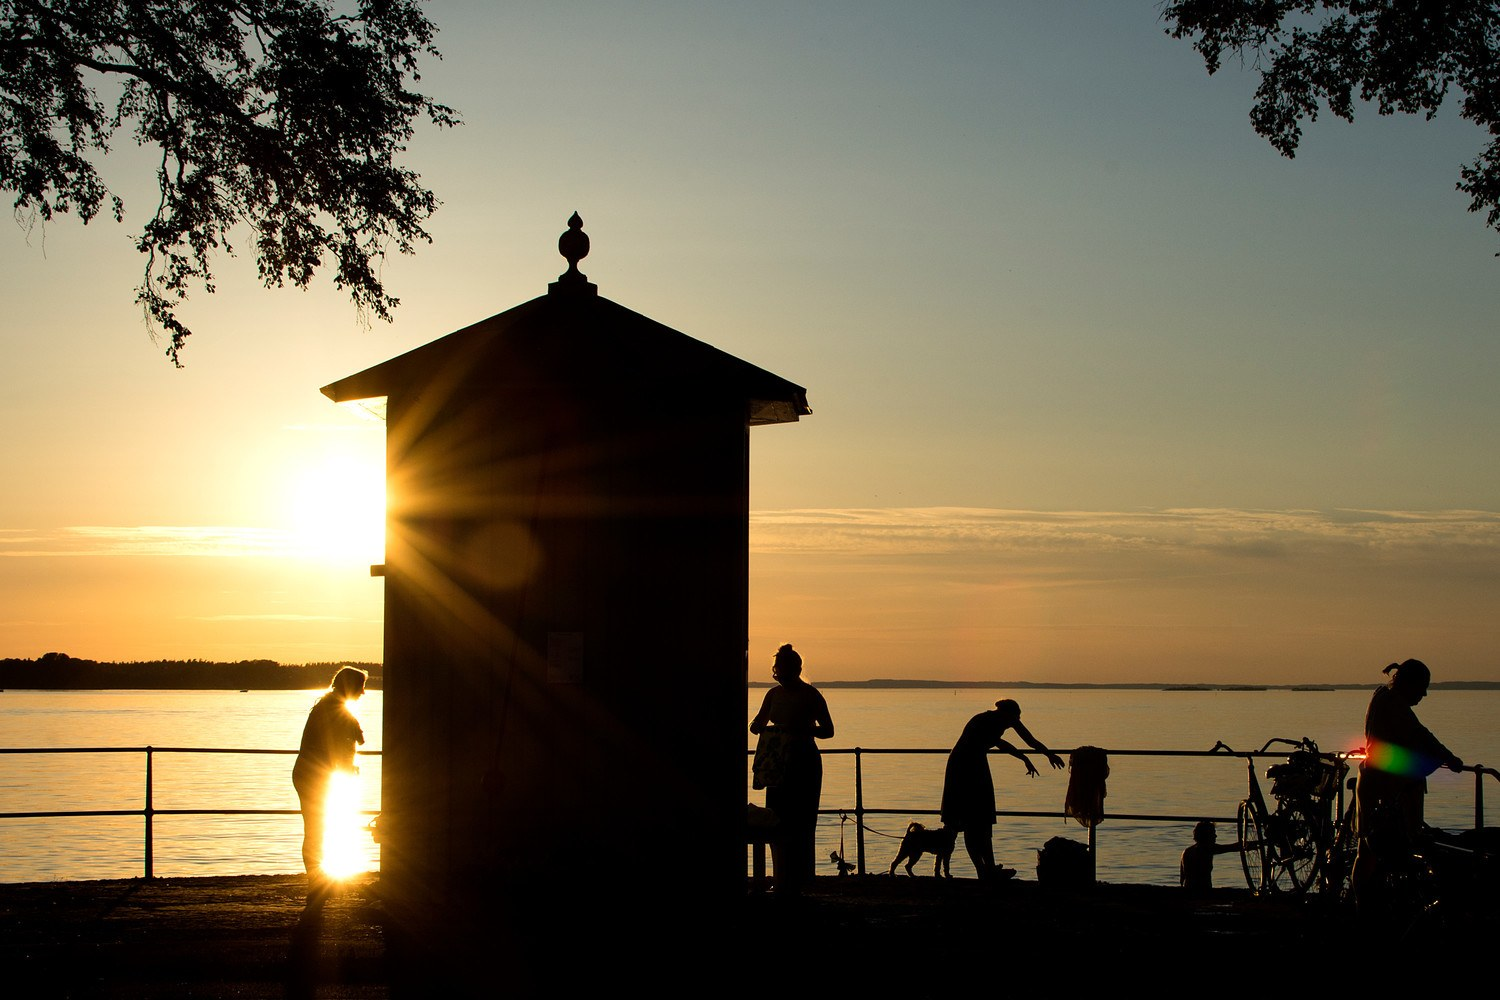 Active people as silhouettes by the water at sunset. - stor (580976)